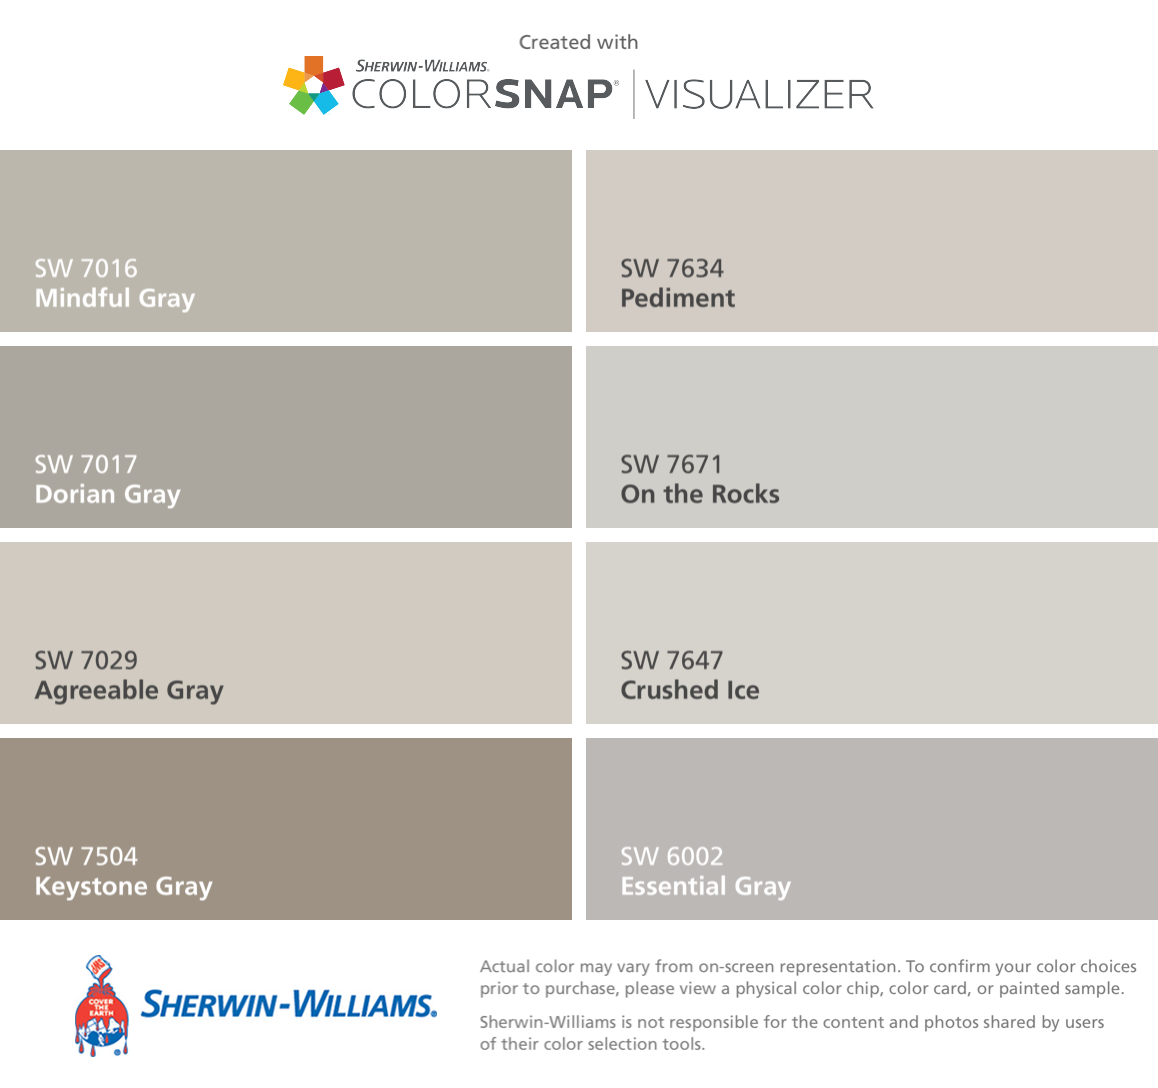 I Found These Colors With Colorsnap Visualizer For Iphone By Sherwin Williams Mindful Gray Sw